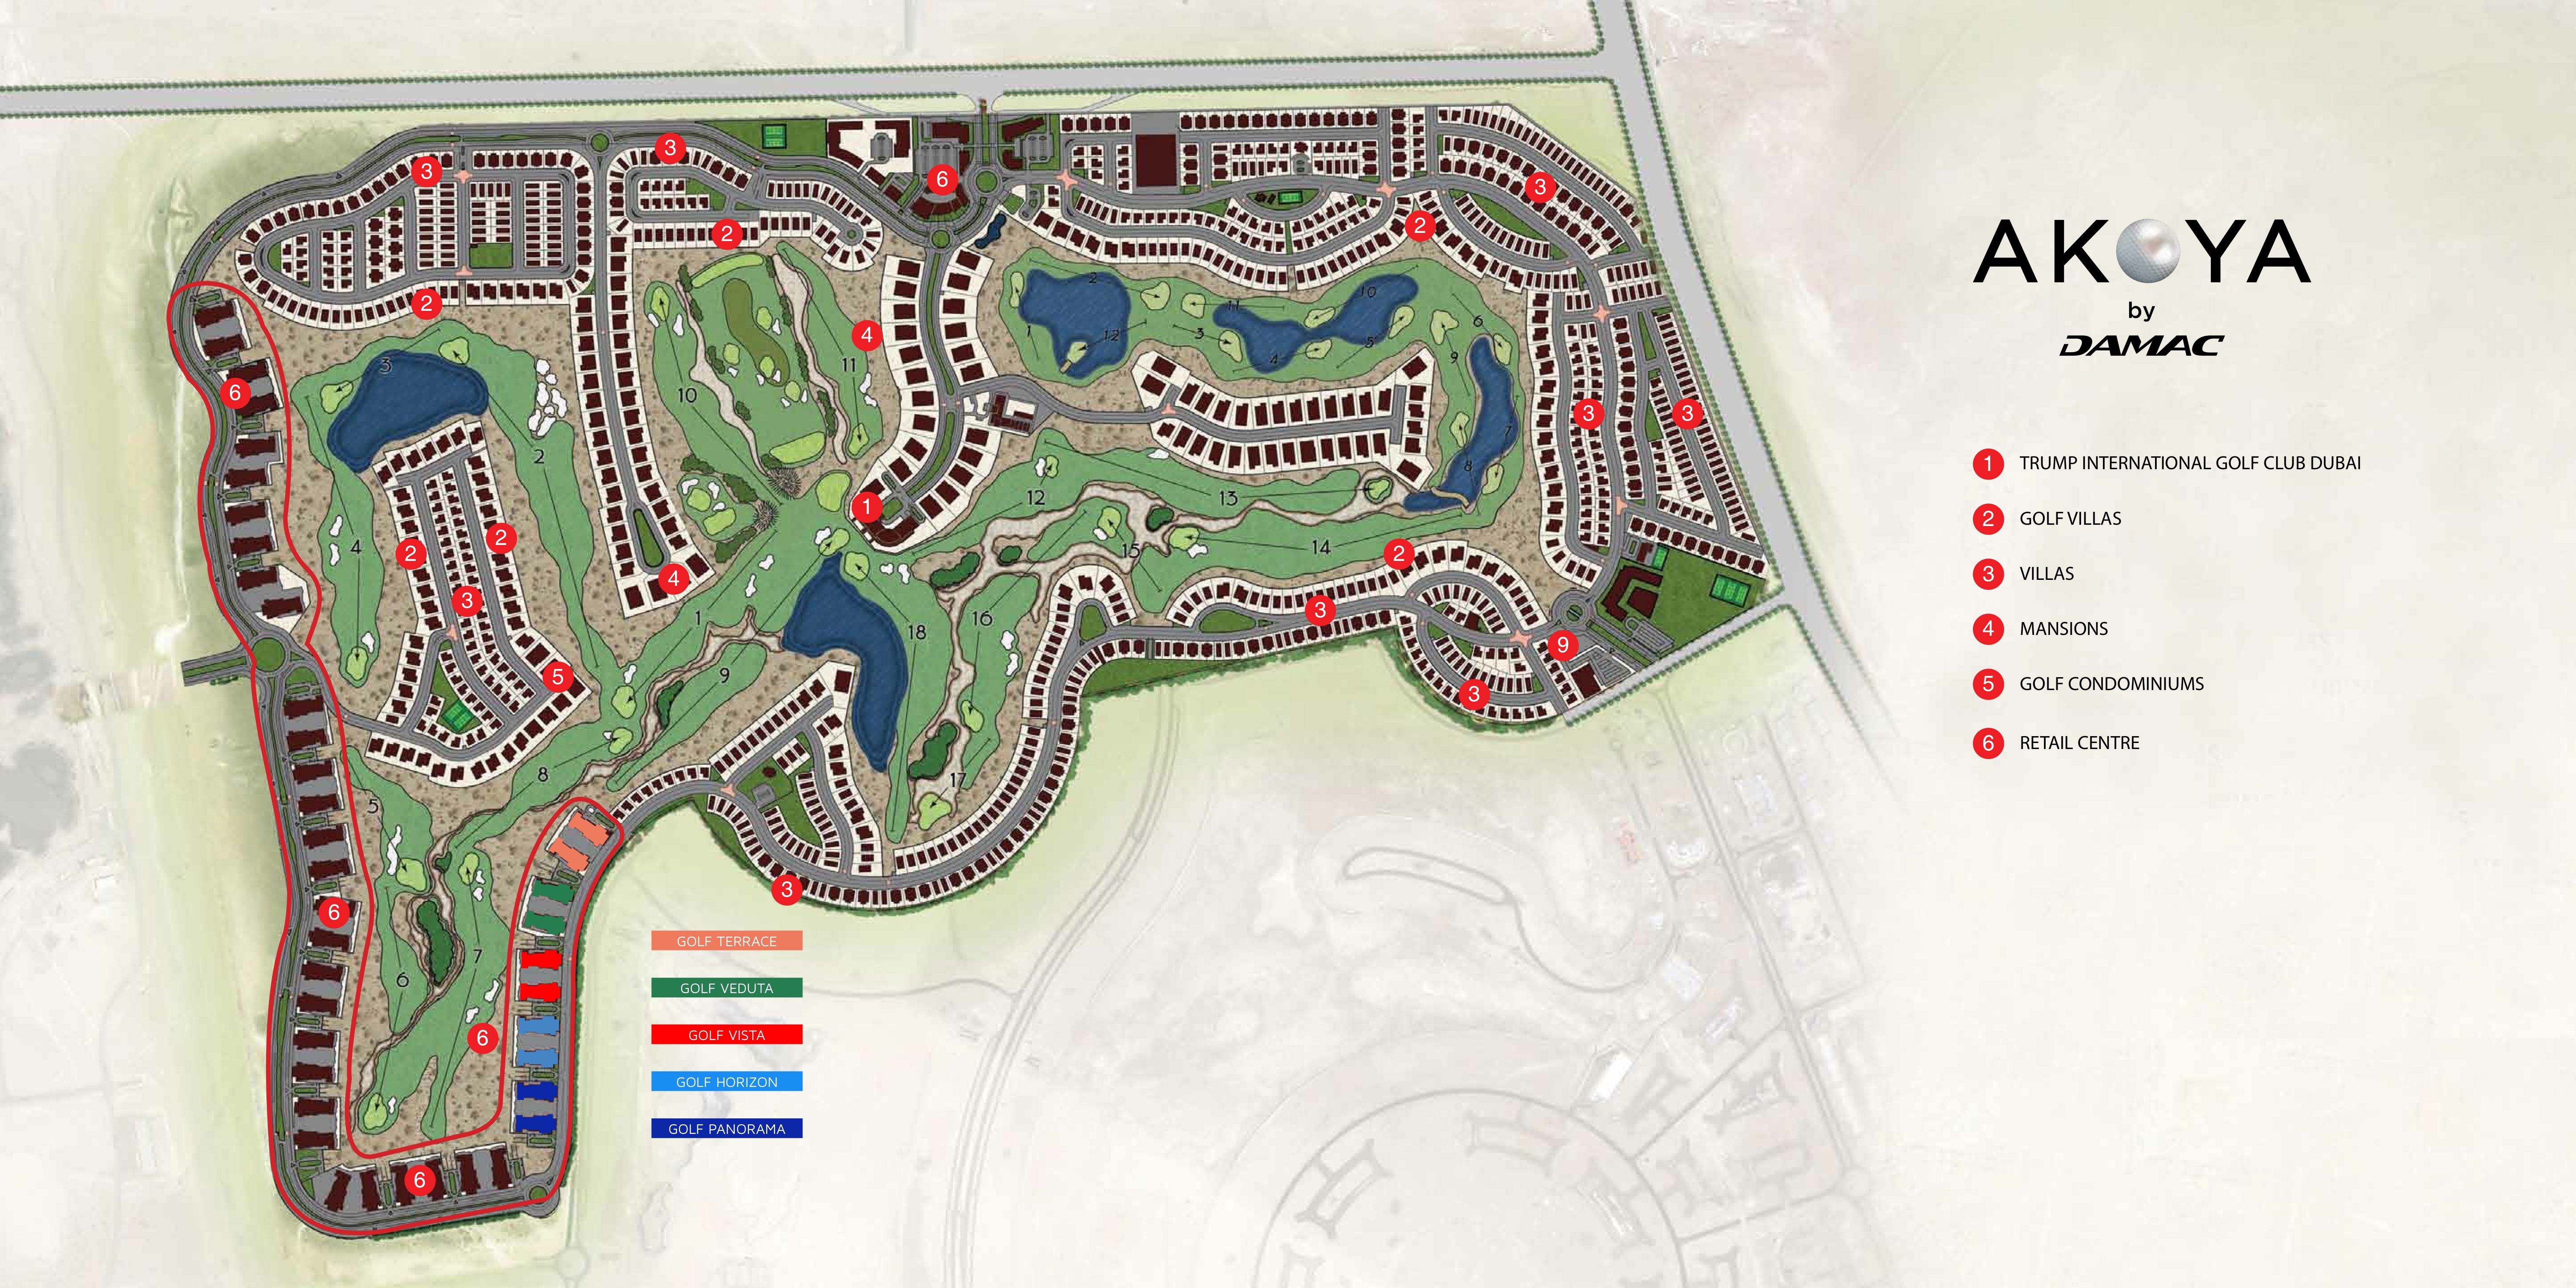 akoya golf condominiums floor plans   dubai uae